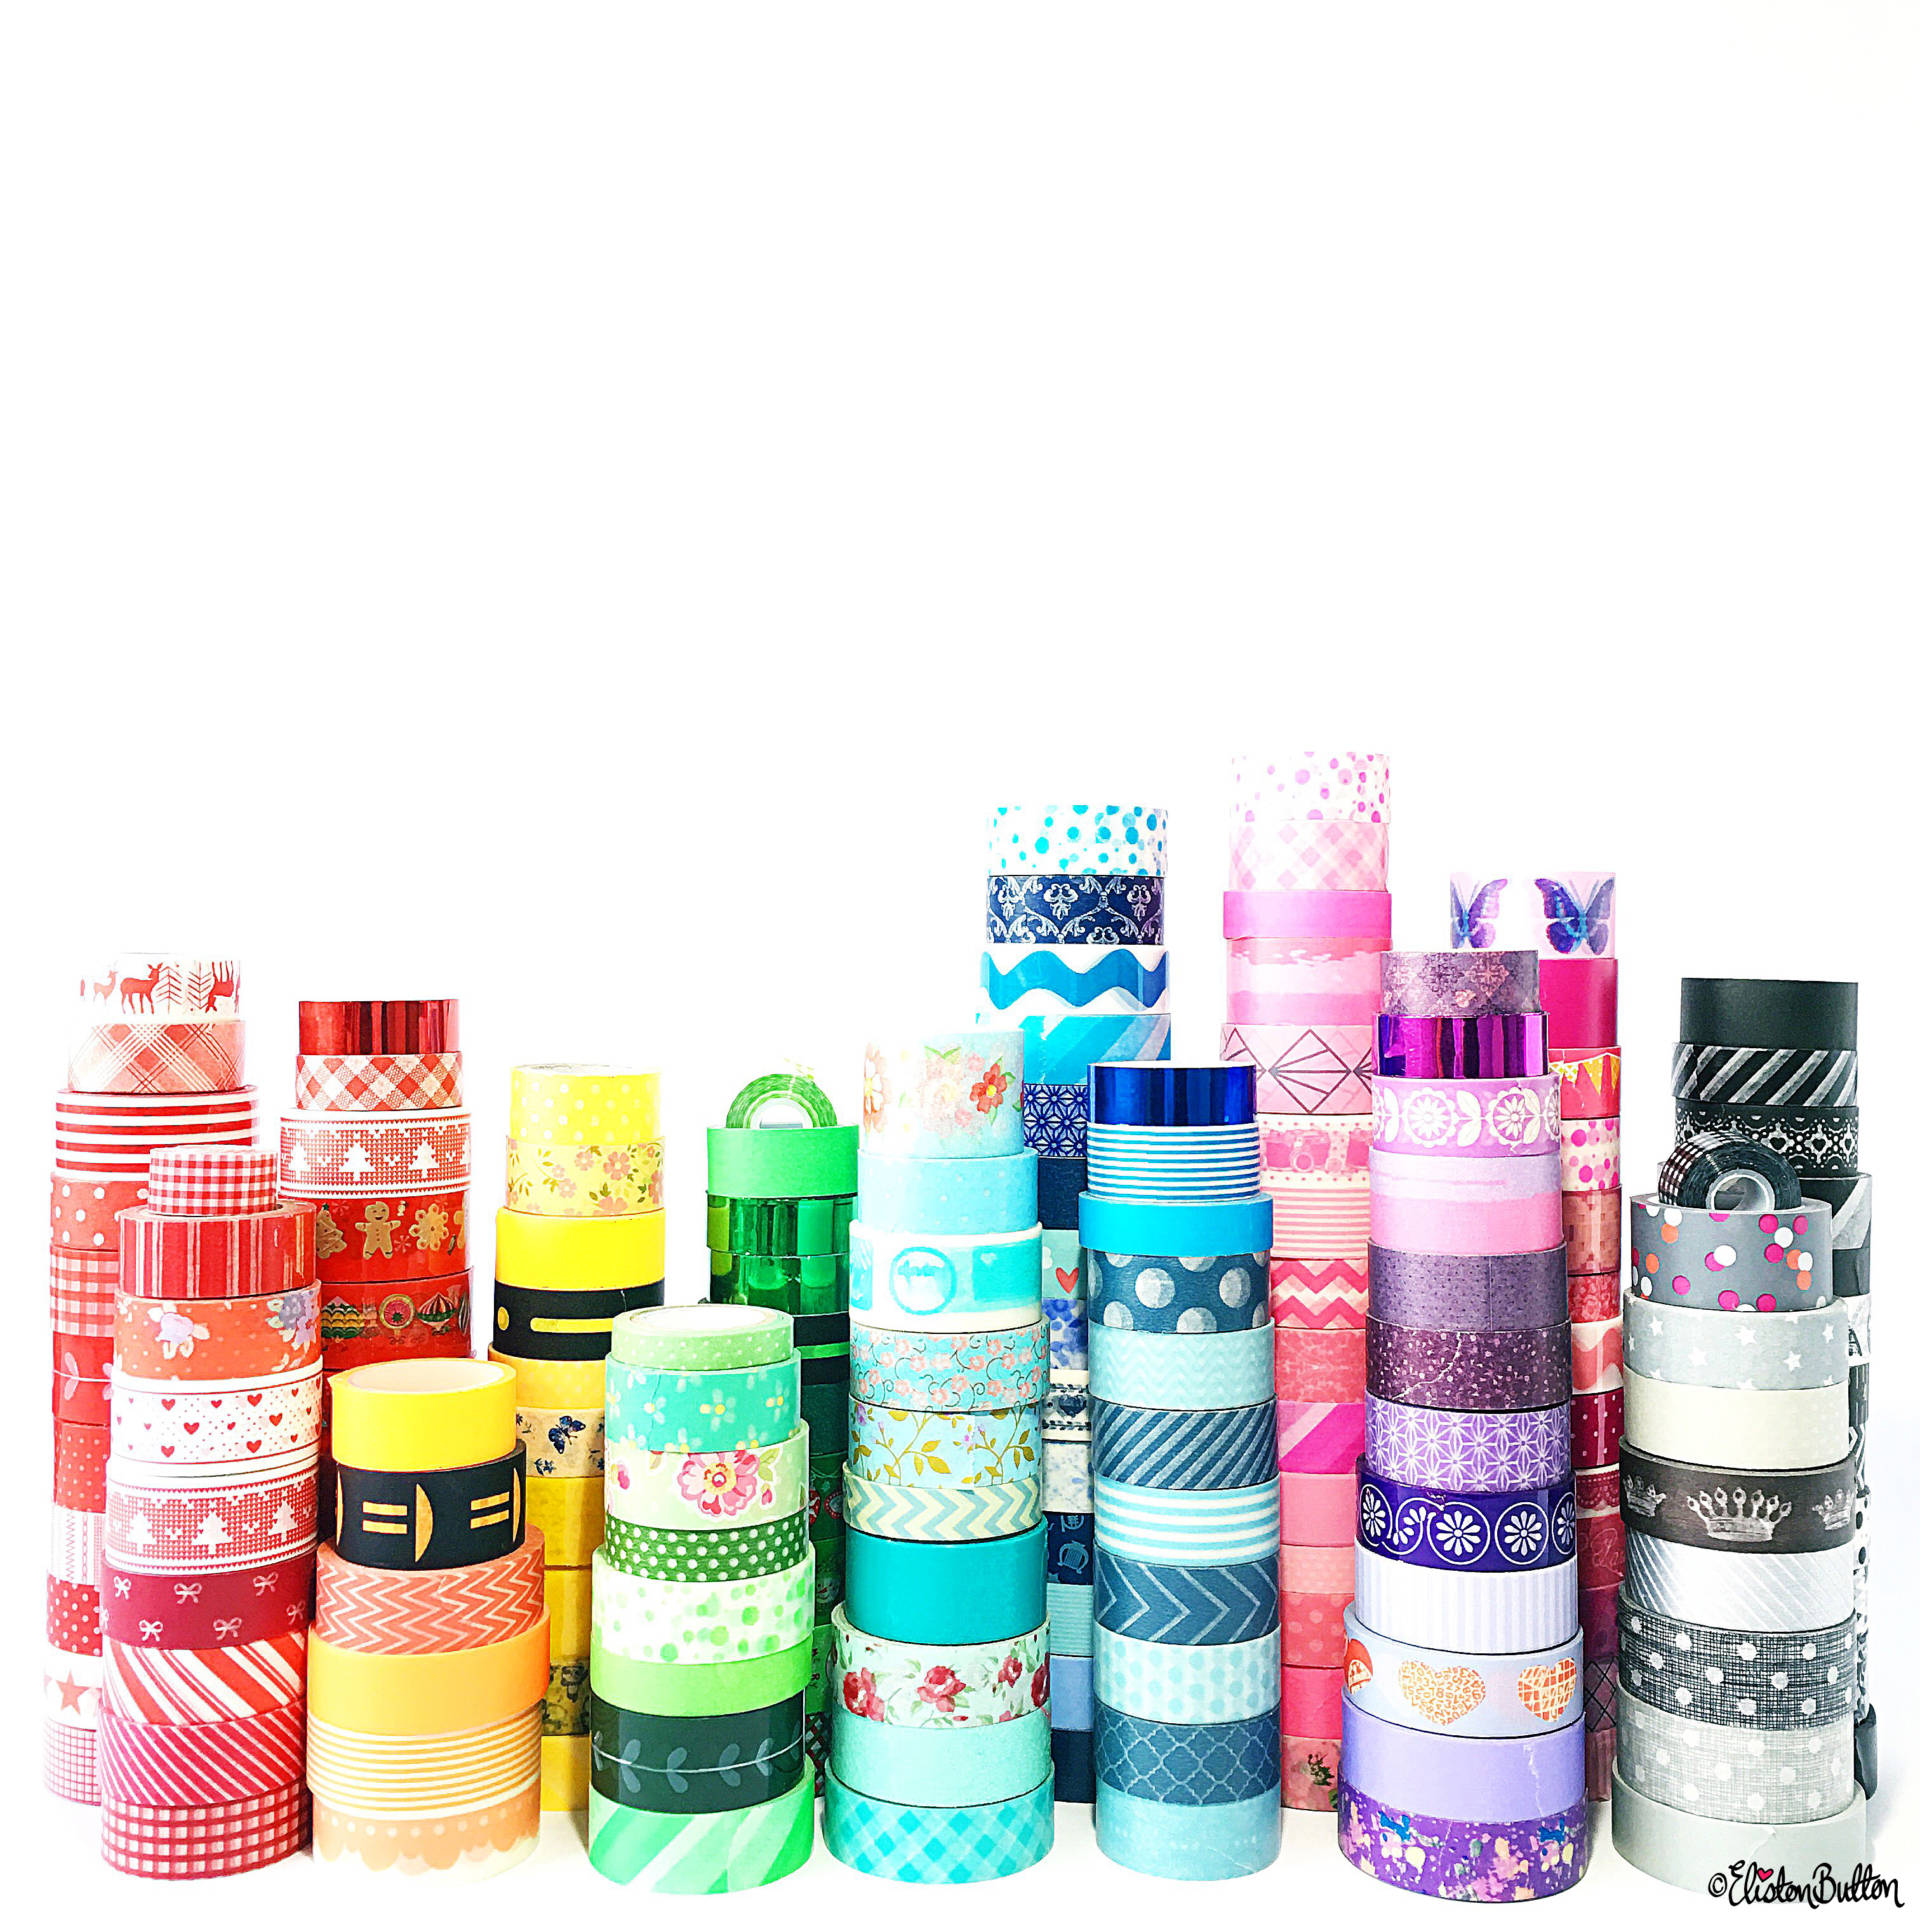 Day 23 - W is For...Washi Tape - A Rainbow of Washi Tape - Photo-a-Day - July 2016 - Eliston Button A-Z of Craft at www.elistonbutton.com - Eliston Button - That Crafty Kid – Art, Design, Craft & Adventure.